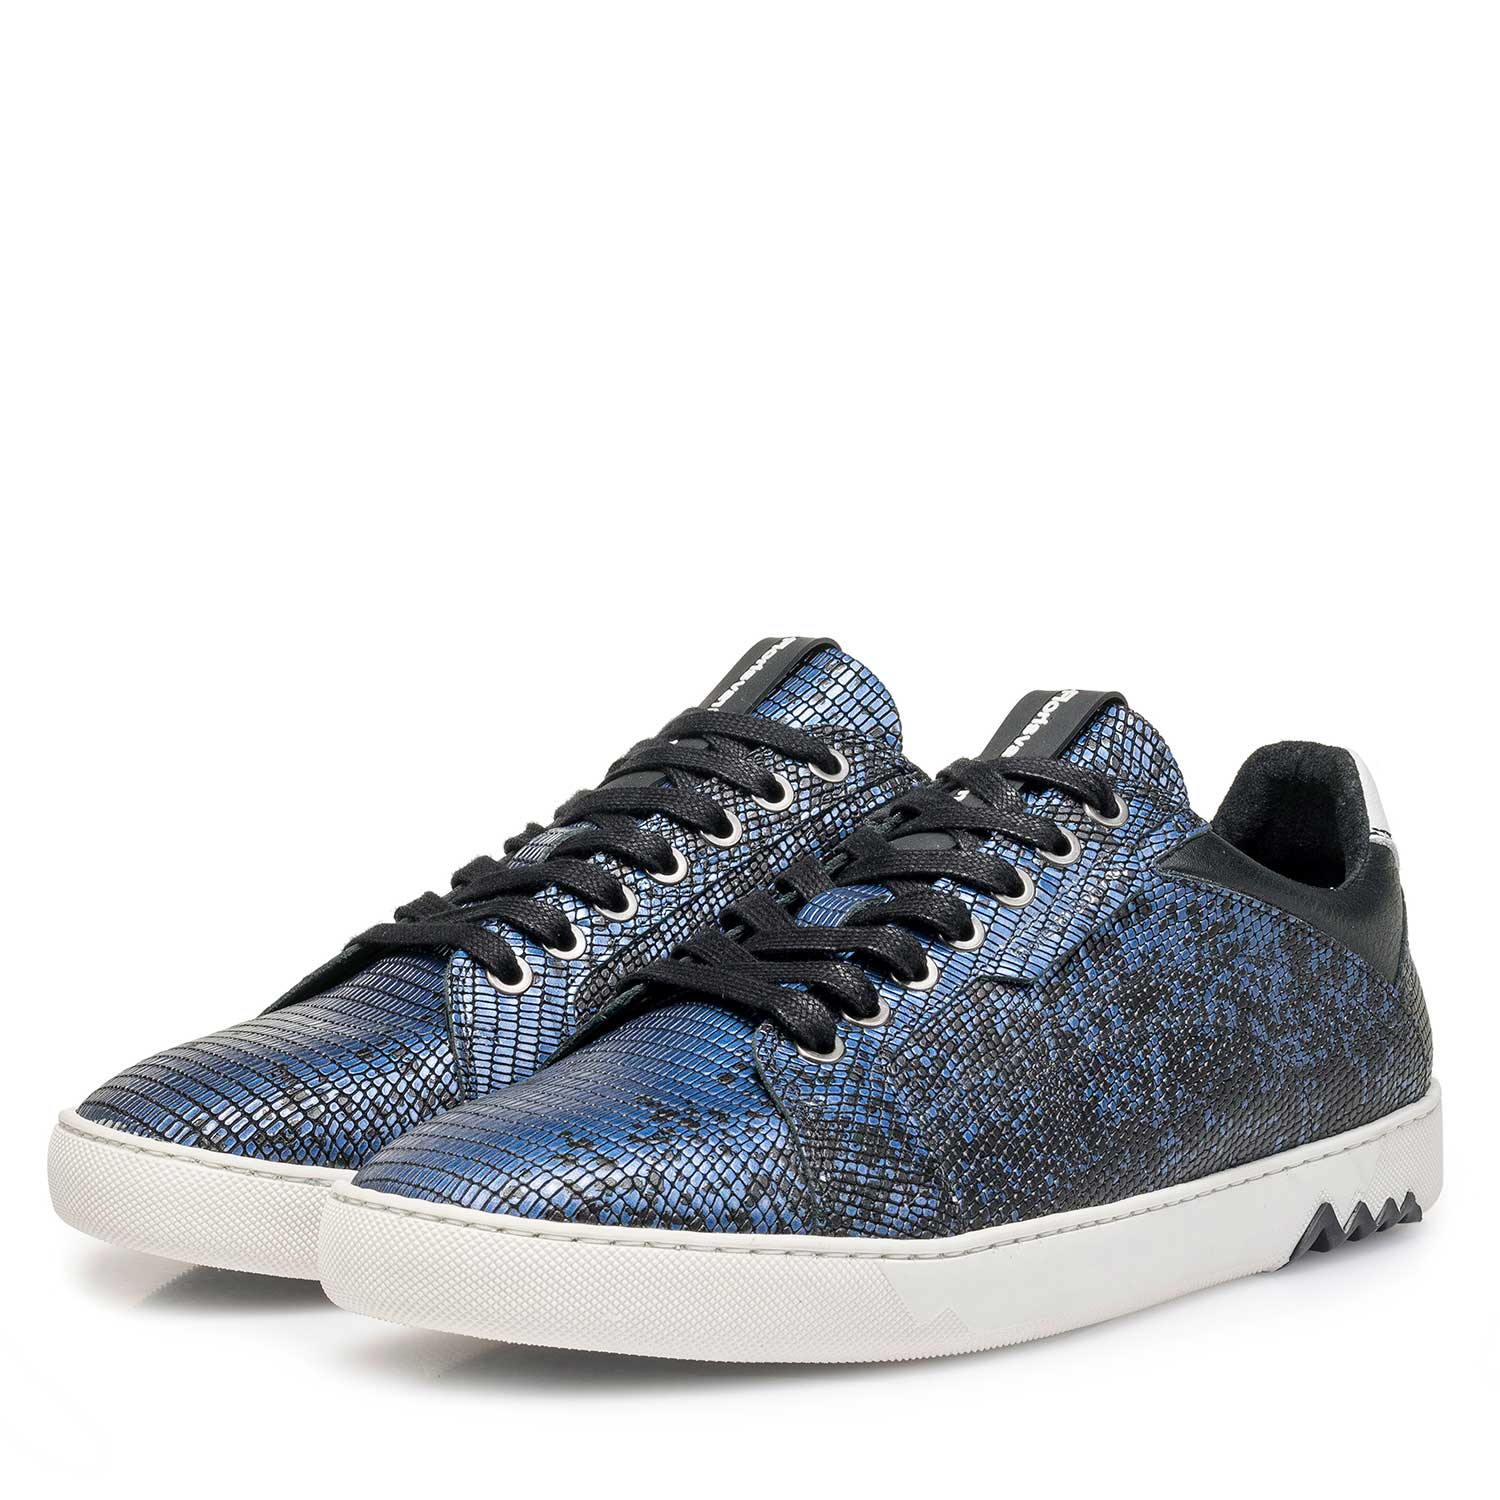 13342/01 - Blue premium leather lace shoe with metallic print